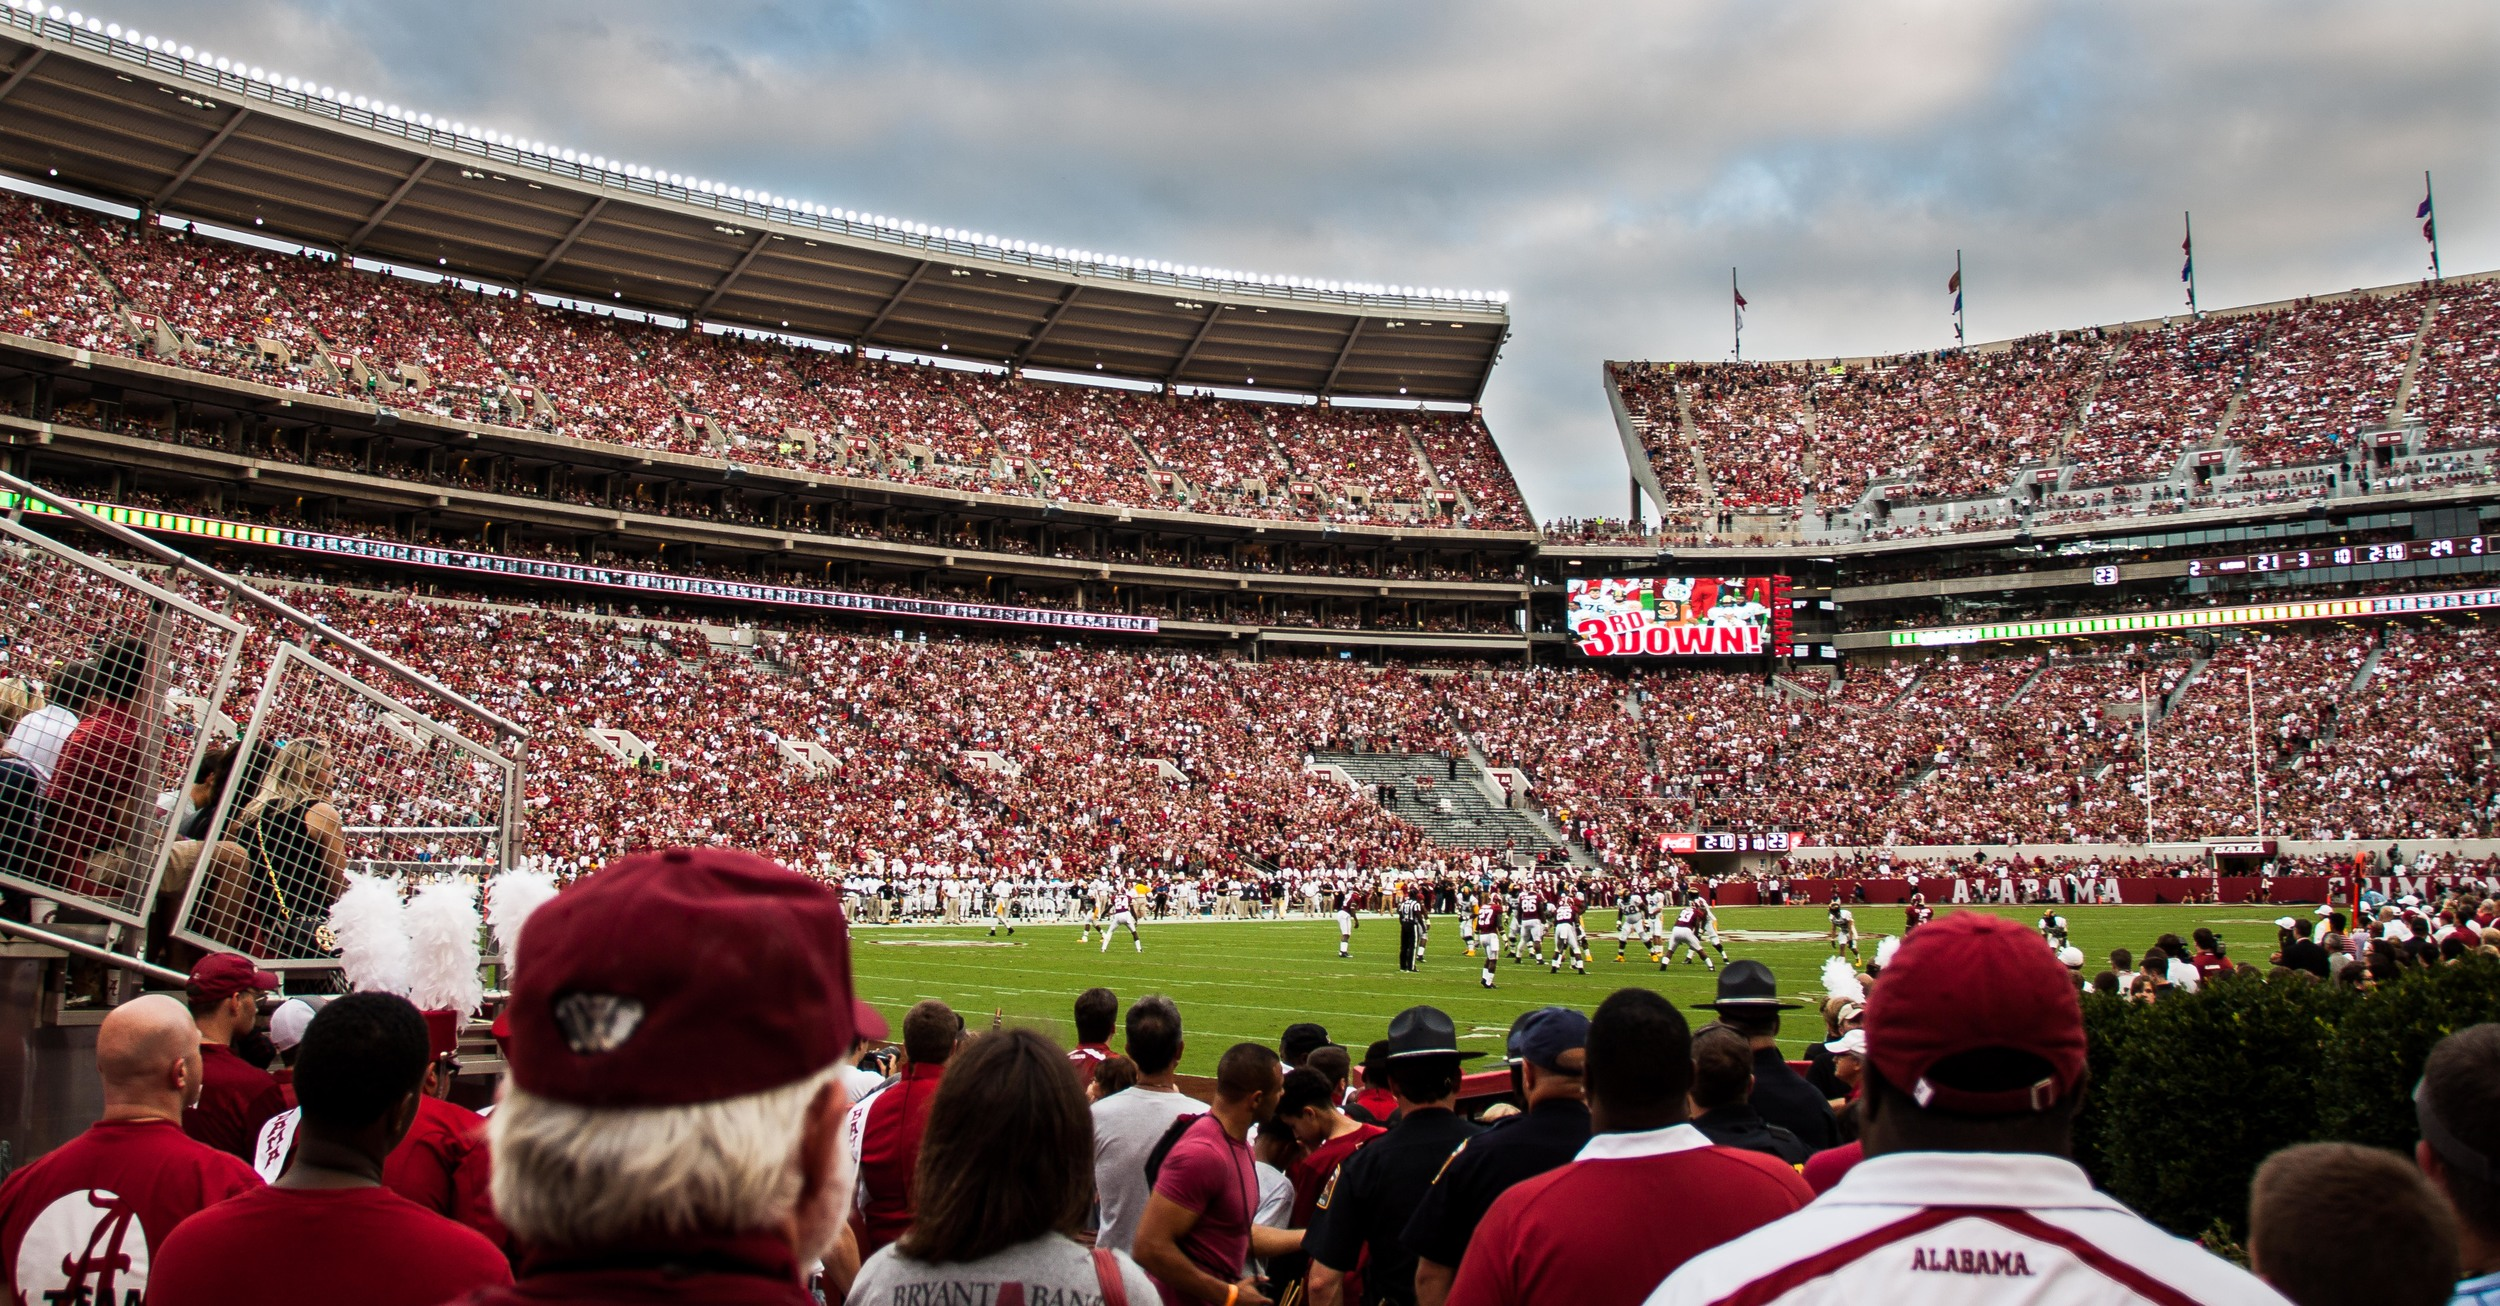 This shot was taken when by section N-1 when I was trying to find my way to the top of Bryant-Denny Stadium.  It was cool to be at ground level close to the action.